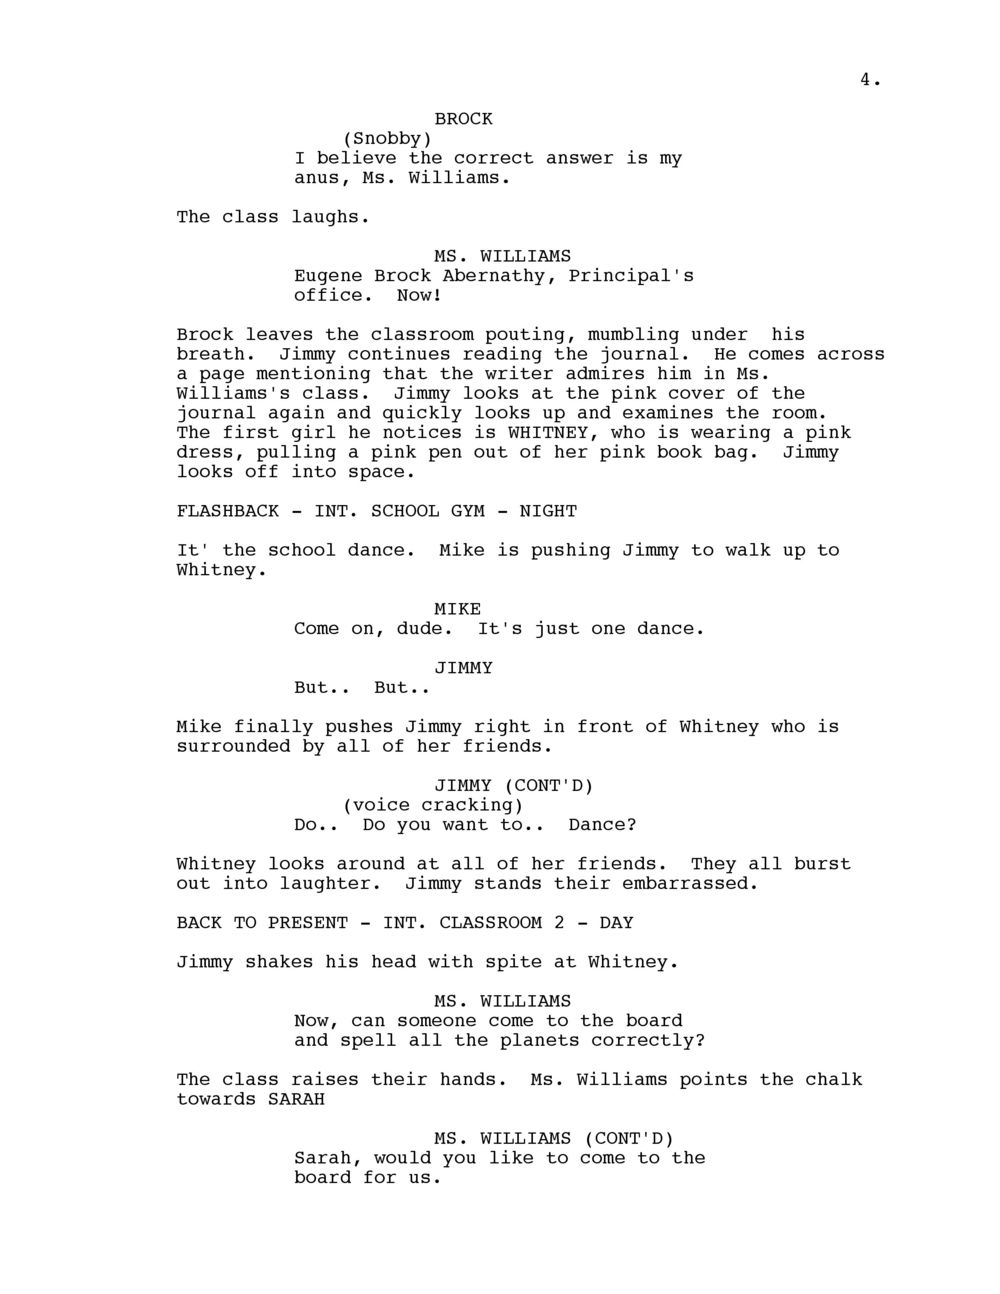 Script - The Pink Journal-4.jpg